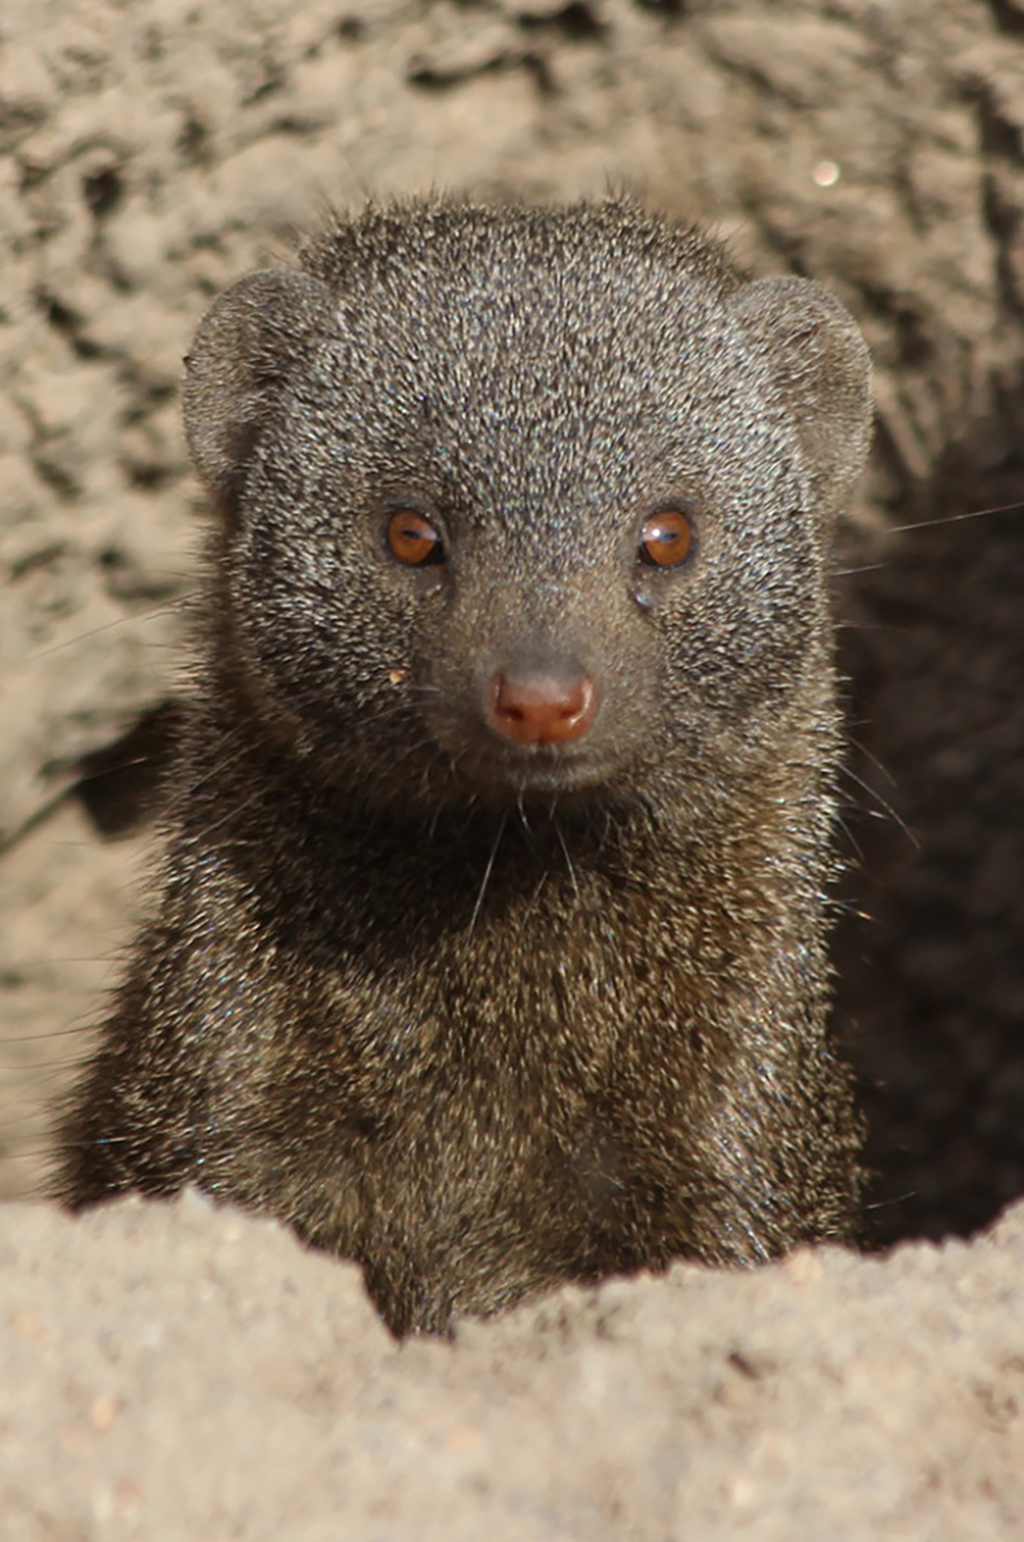 A cheeky mongoose peeking up from his burrow Photograph copyright Jodie Ramackers